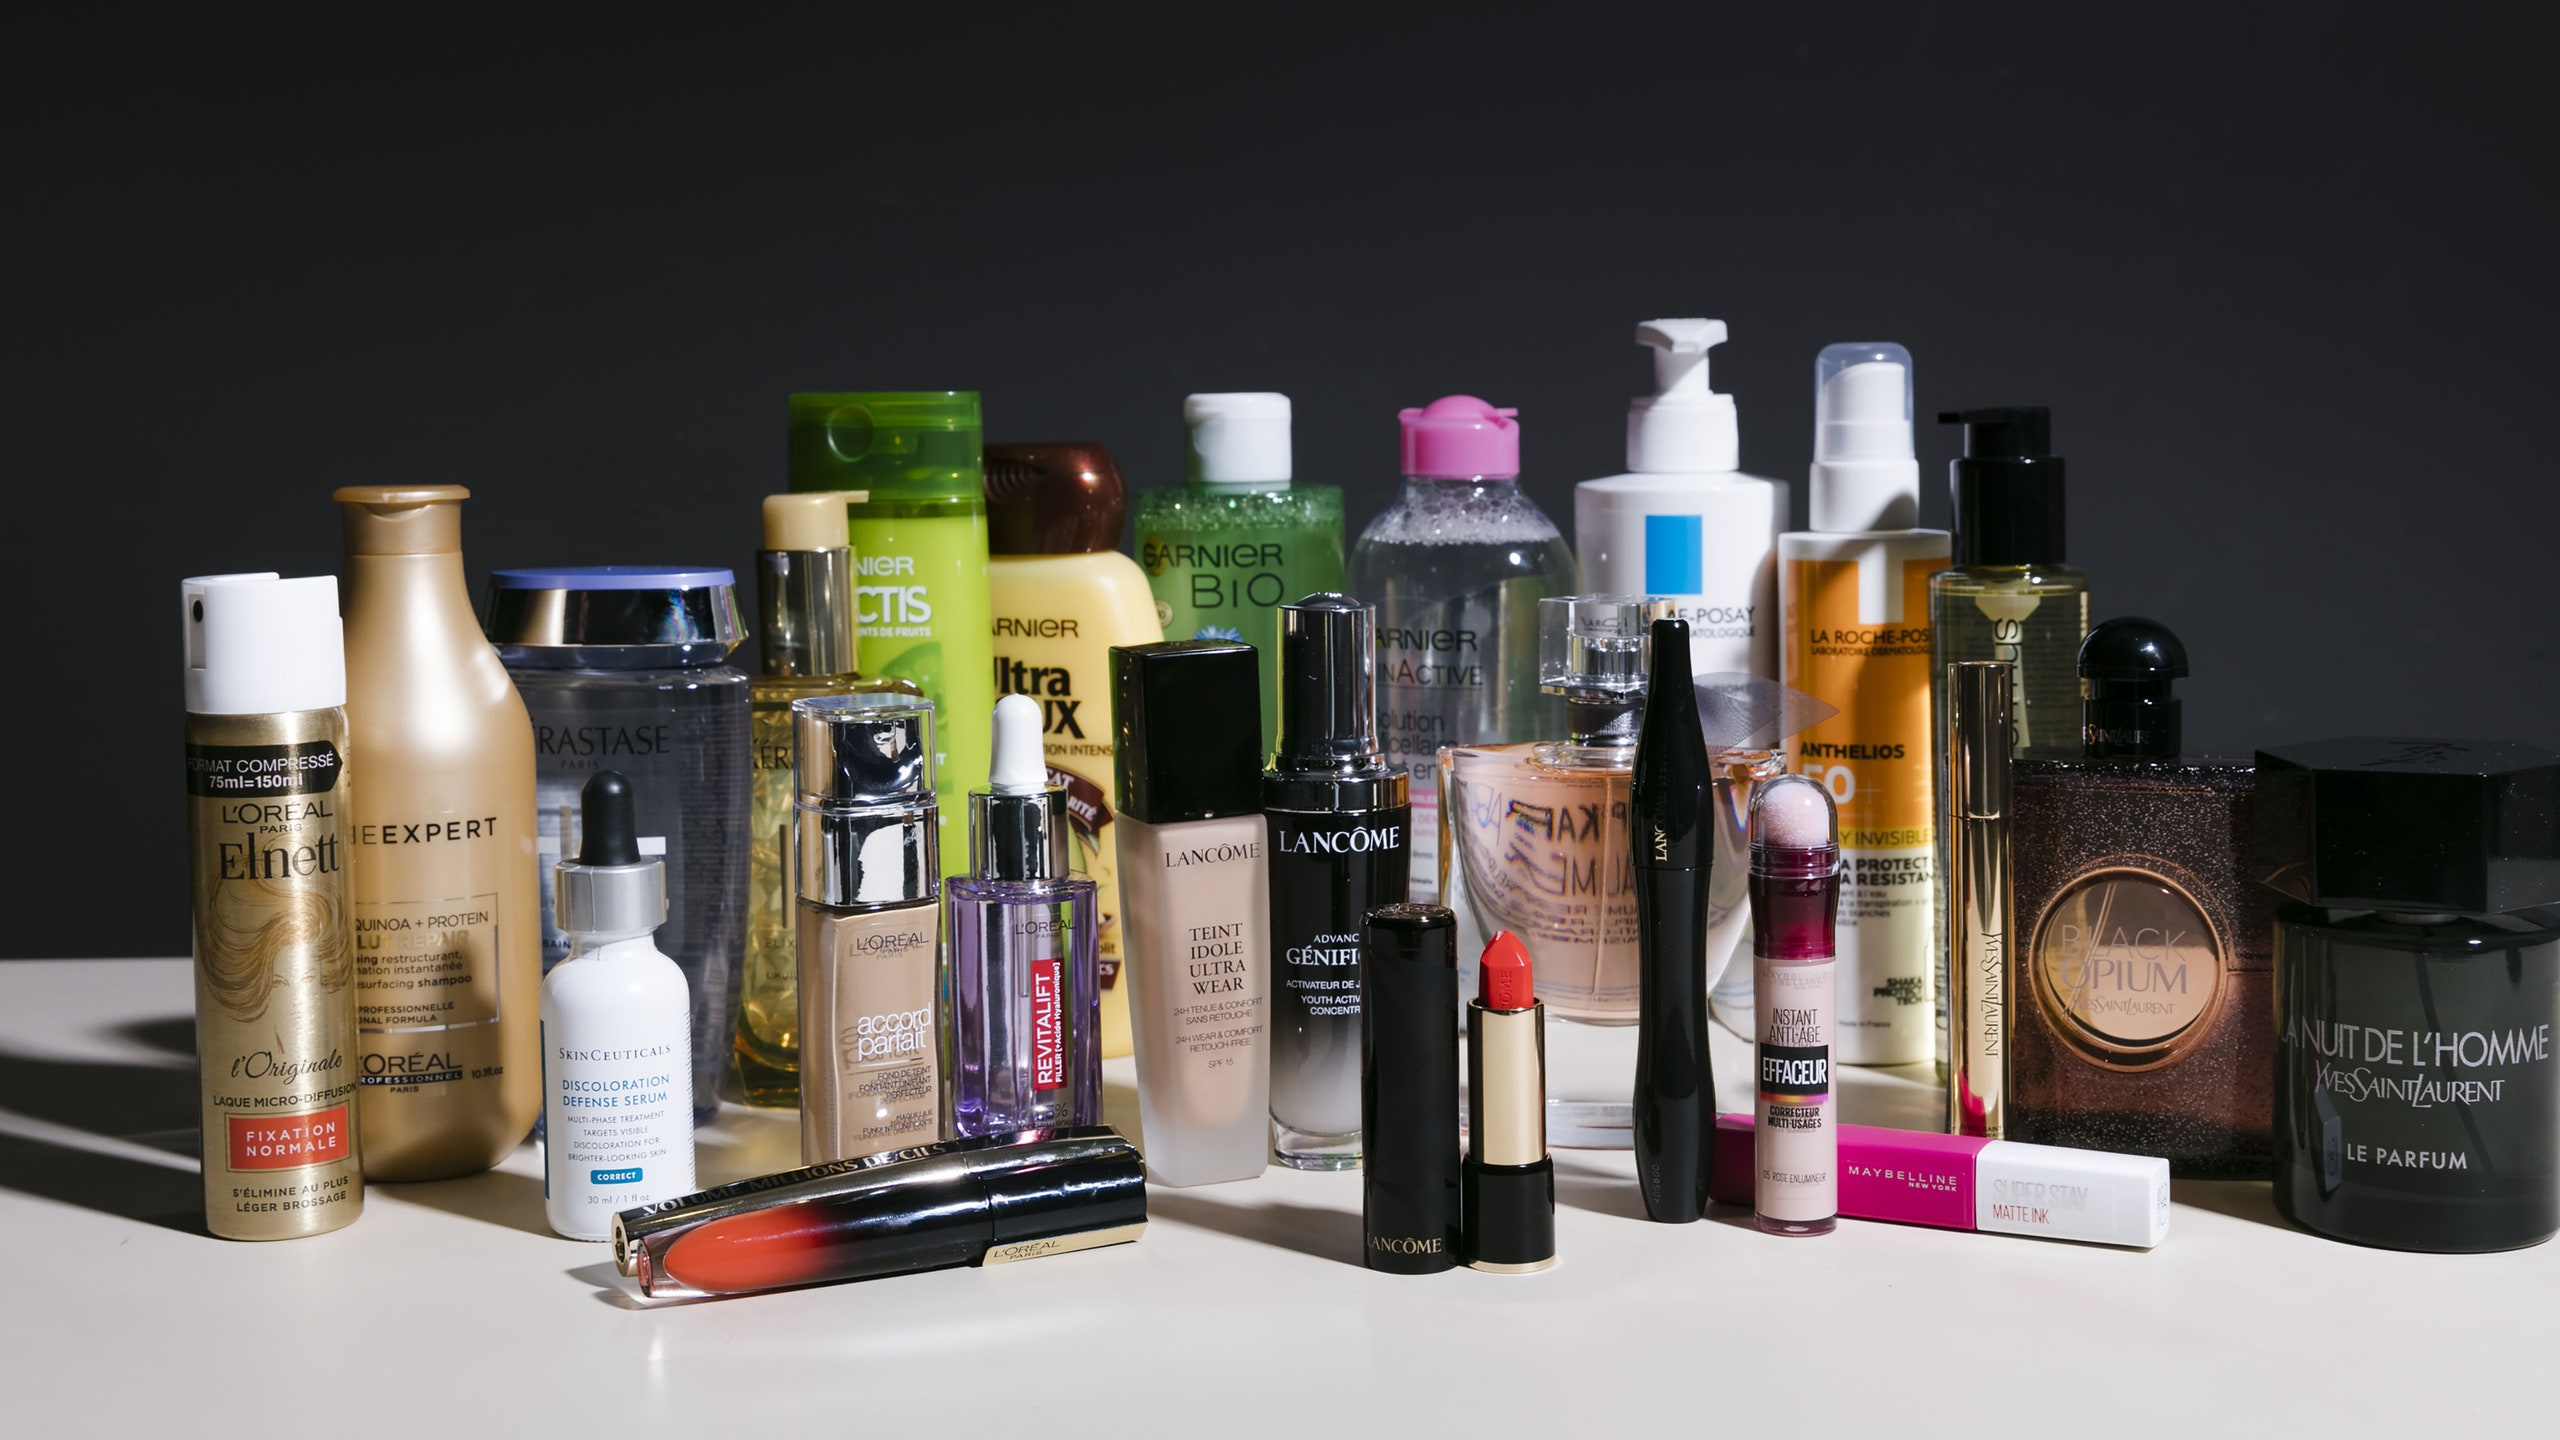 L'Oreal promises to use only sustainable packaging by 2025